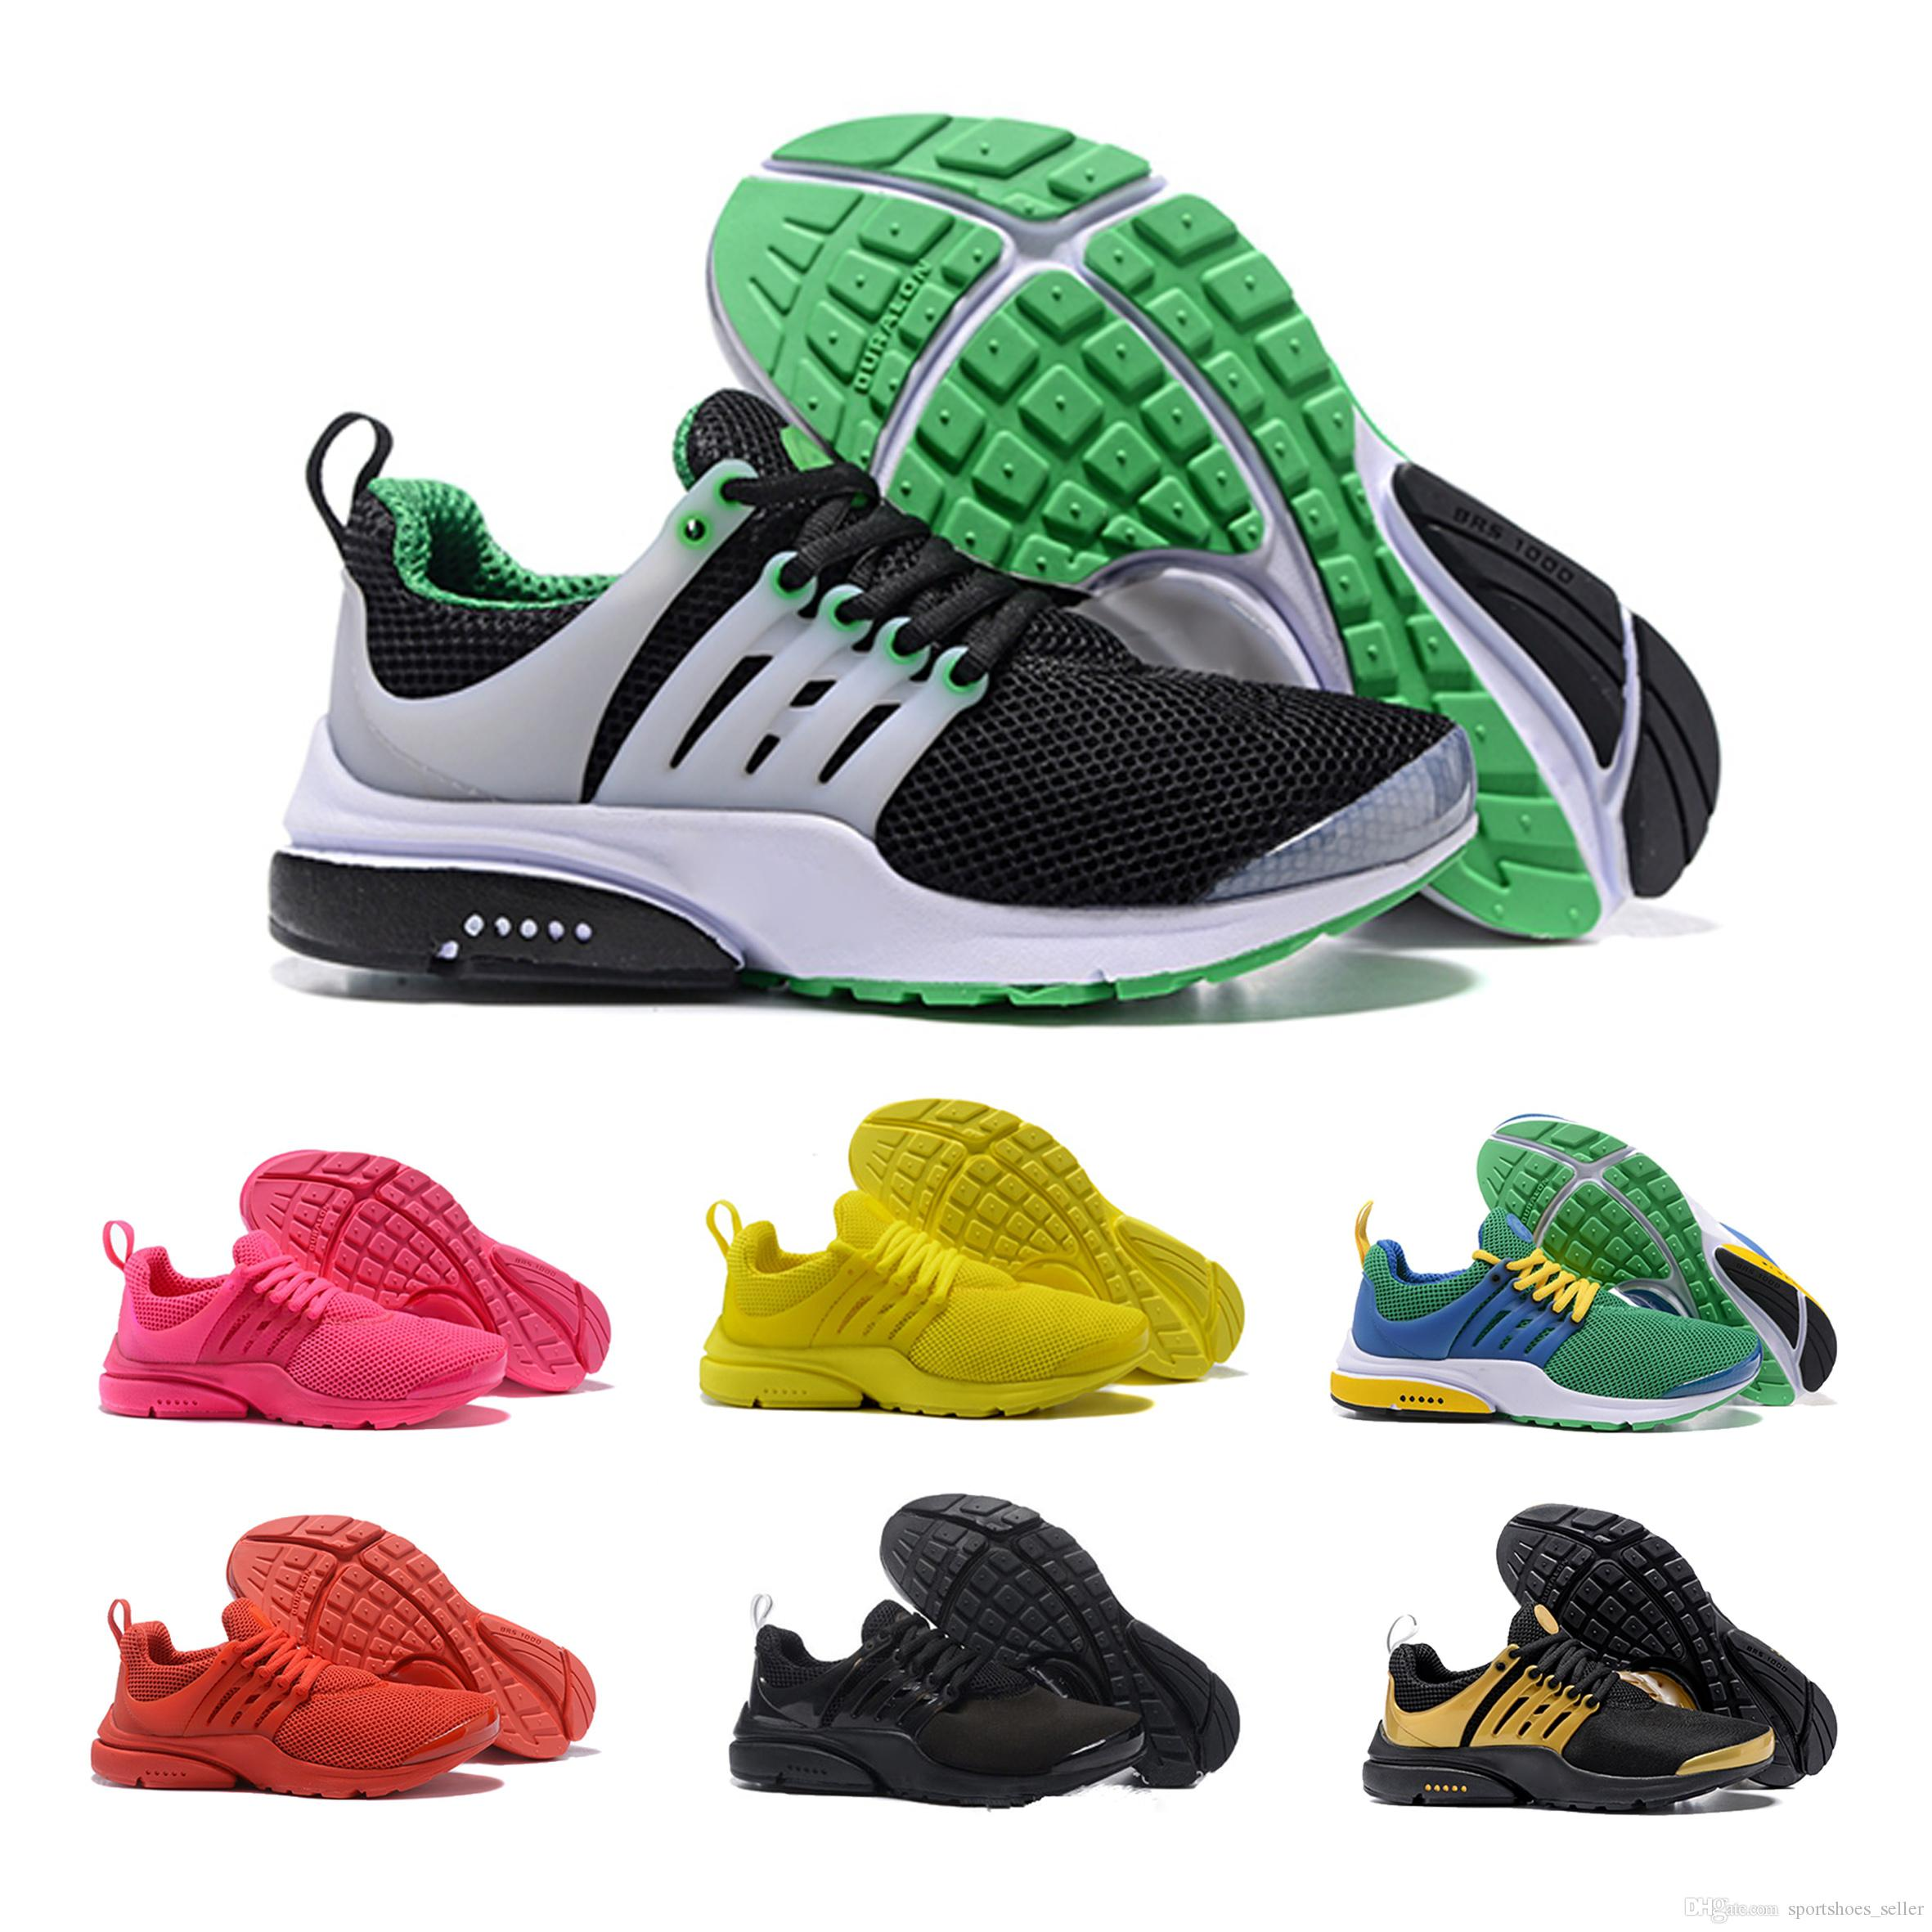 buy popular f314d 0e53a New Hot Presto 5 Ultra BR QS Black White All Yellow Purple Running Shoes  For Women Men Top Prestos V Casual Sports Sneakers Mens Sneakers Cheap Shoes  From ...